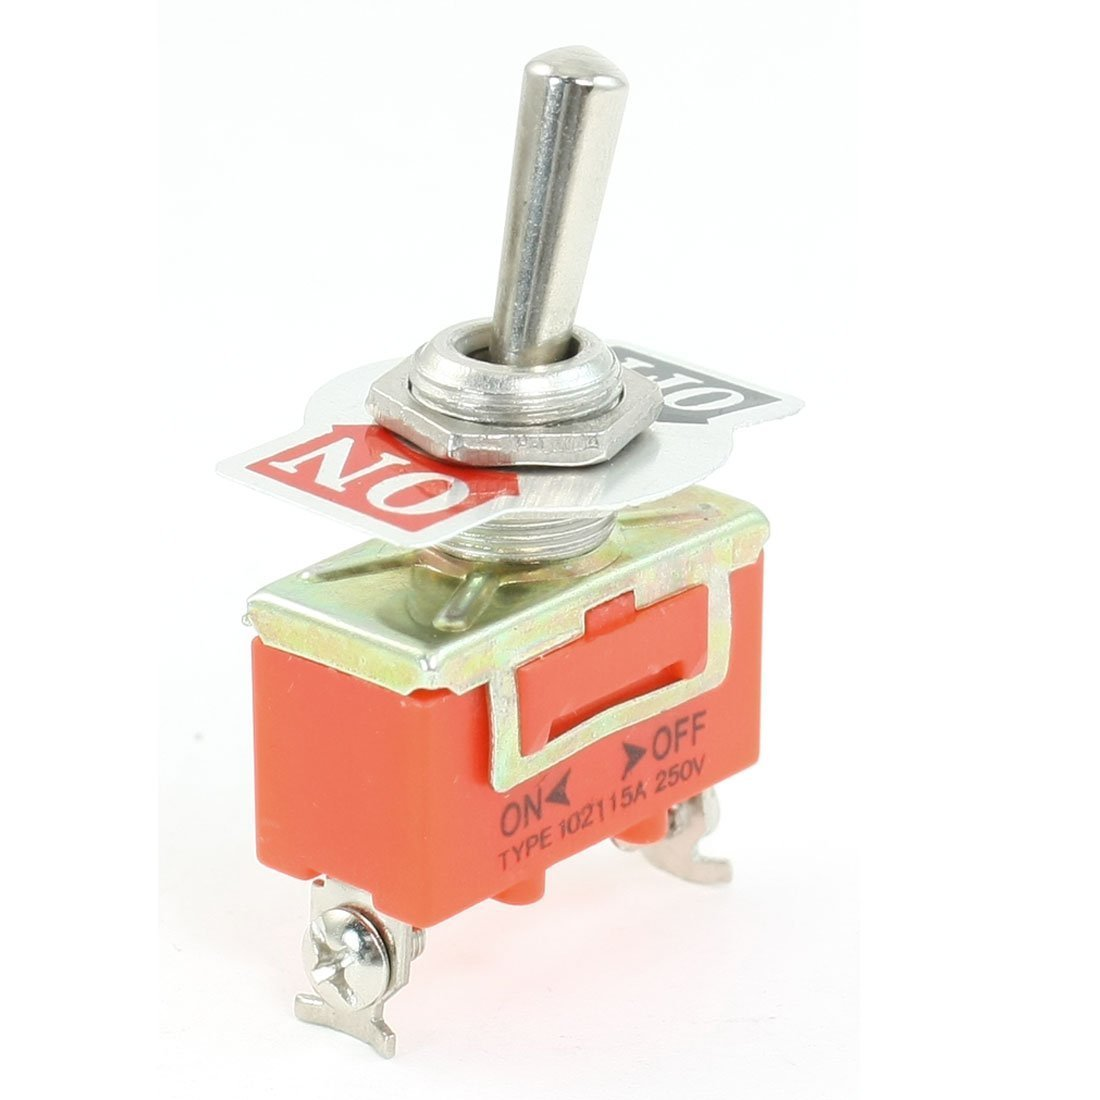 sourcingmap® 30 x 28 x 19mm SPST ON/OFF 2 Position 2 Screw Terminals Toggle Switch AC 250V 15A a13050400ux0522